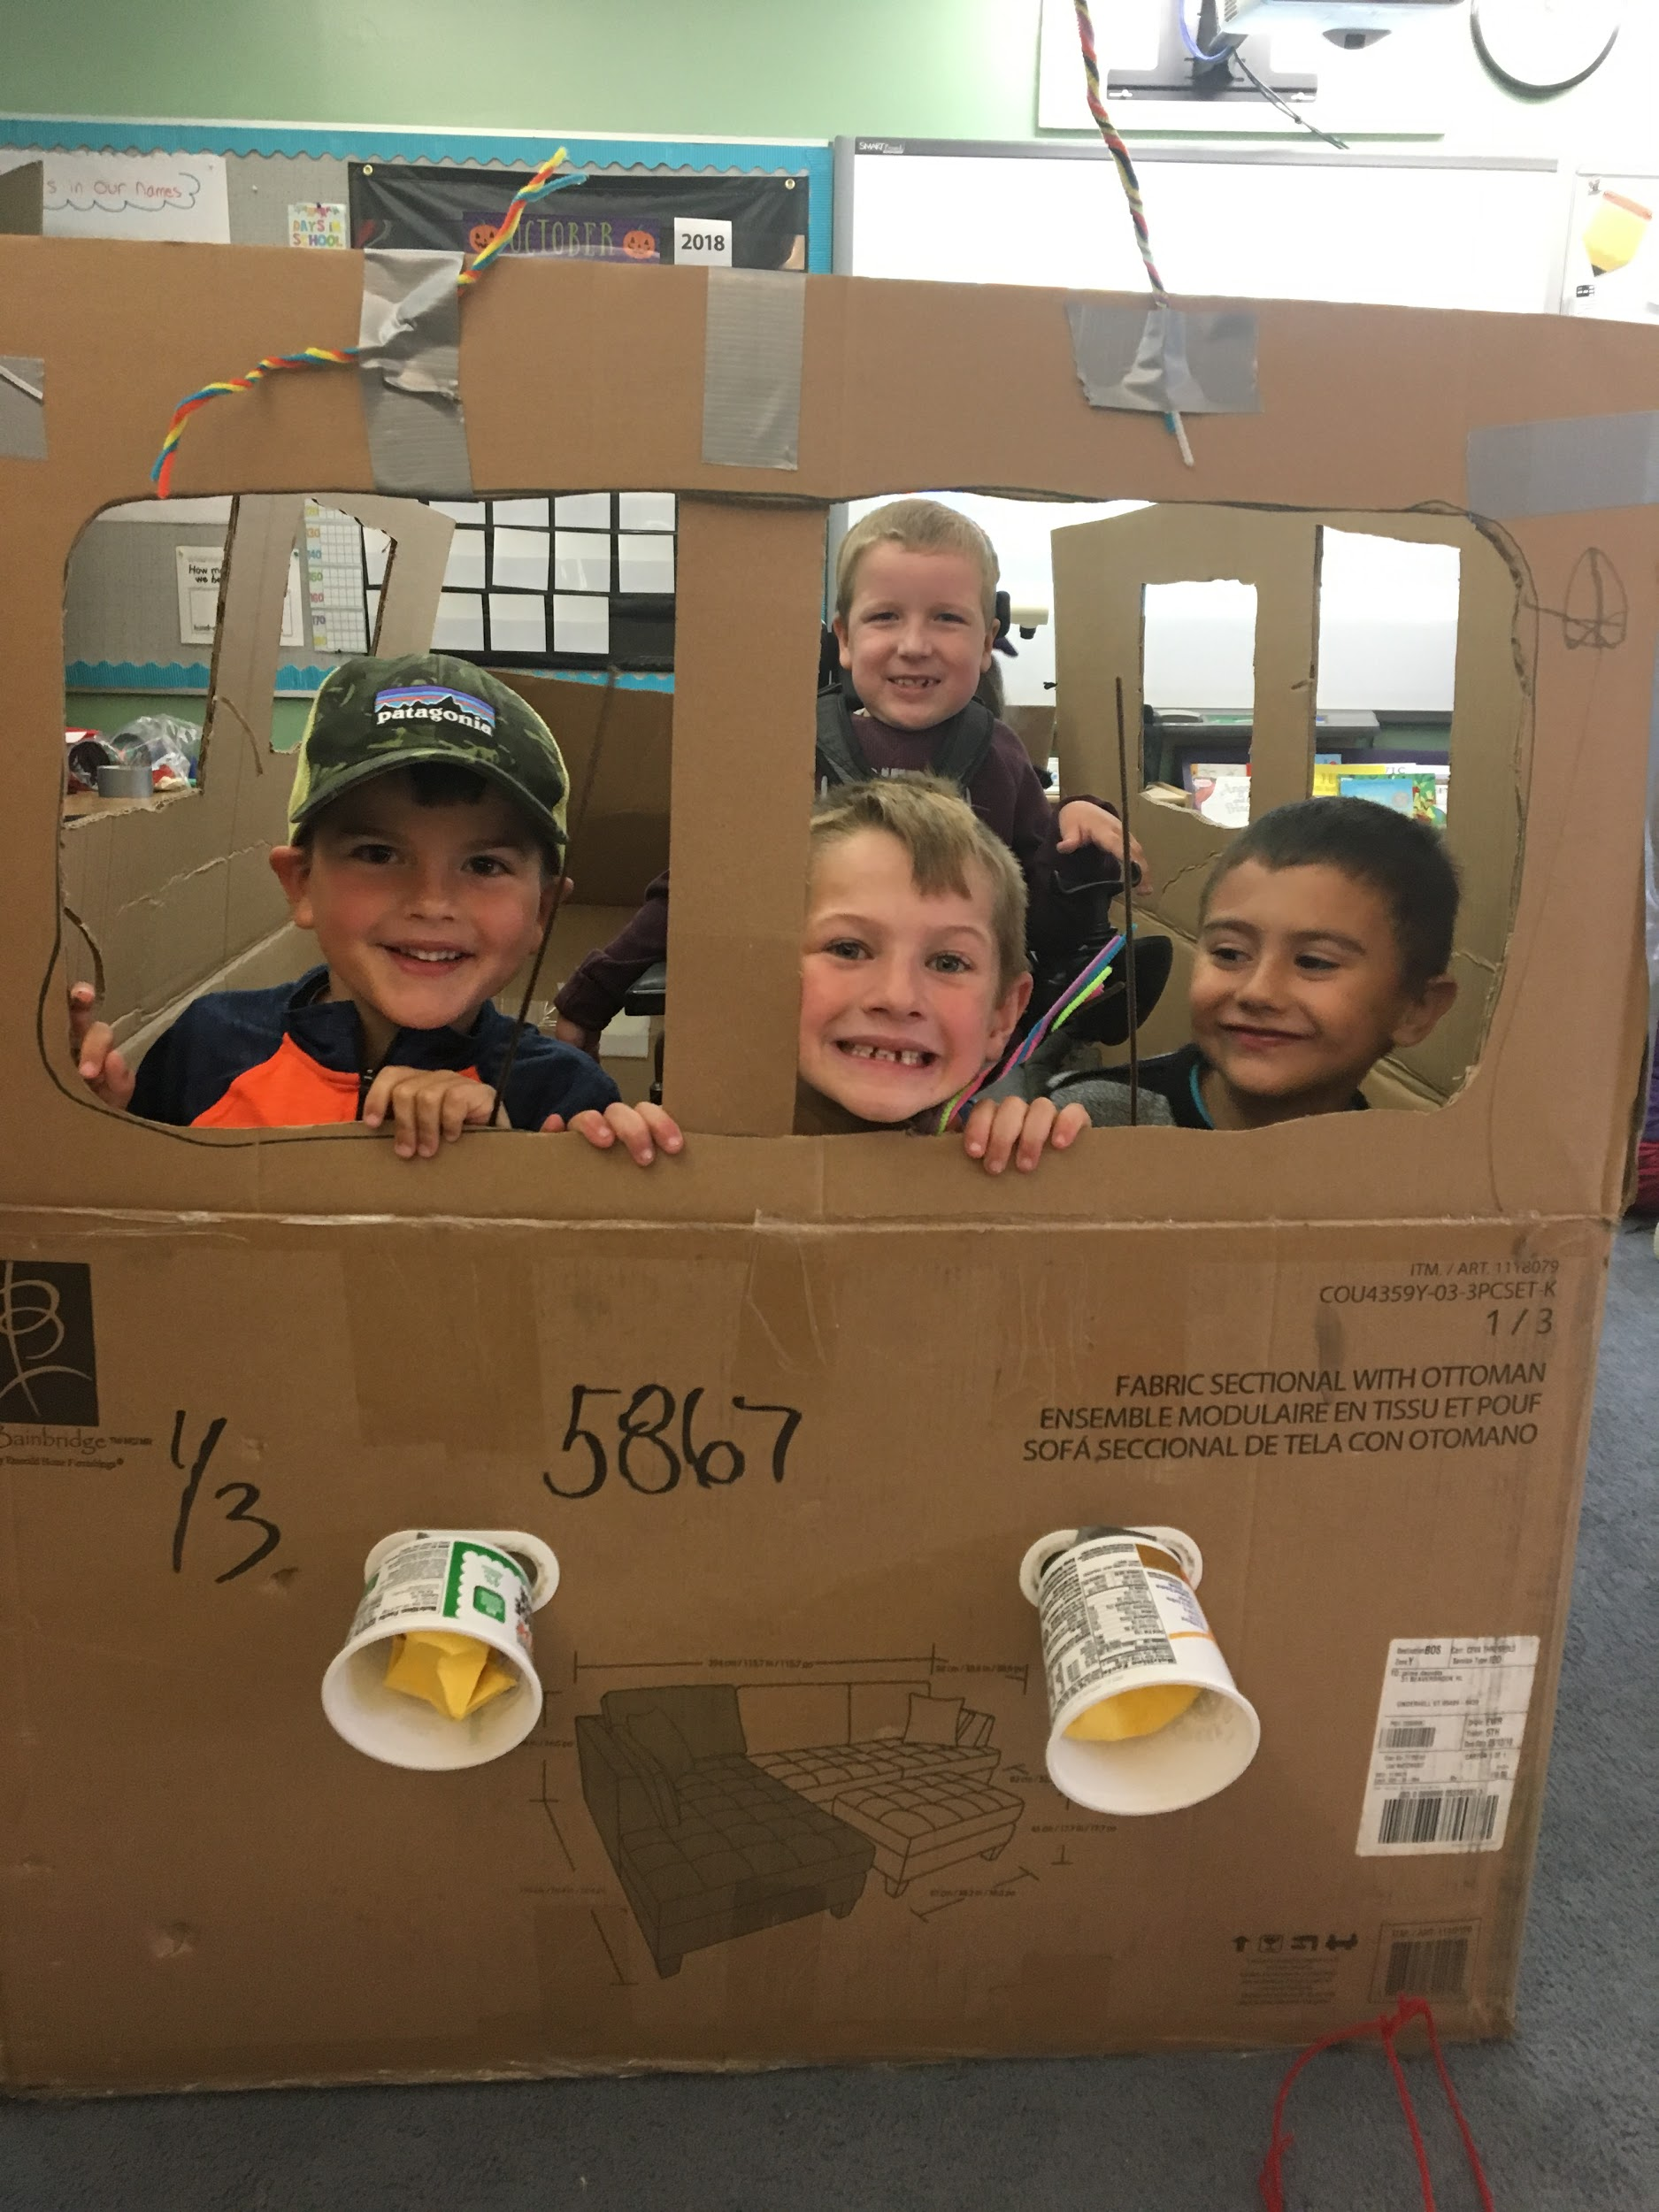 Students on the cardboard bus